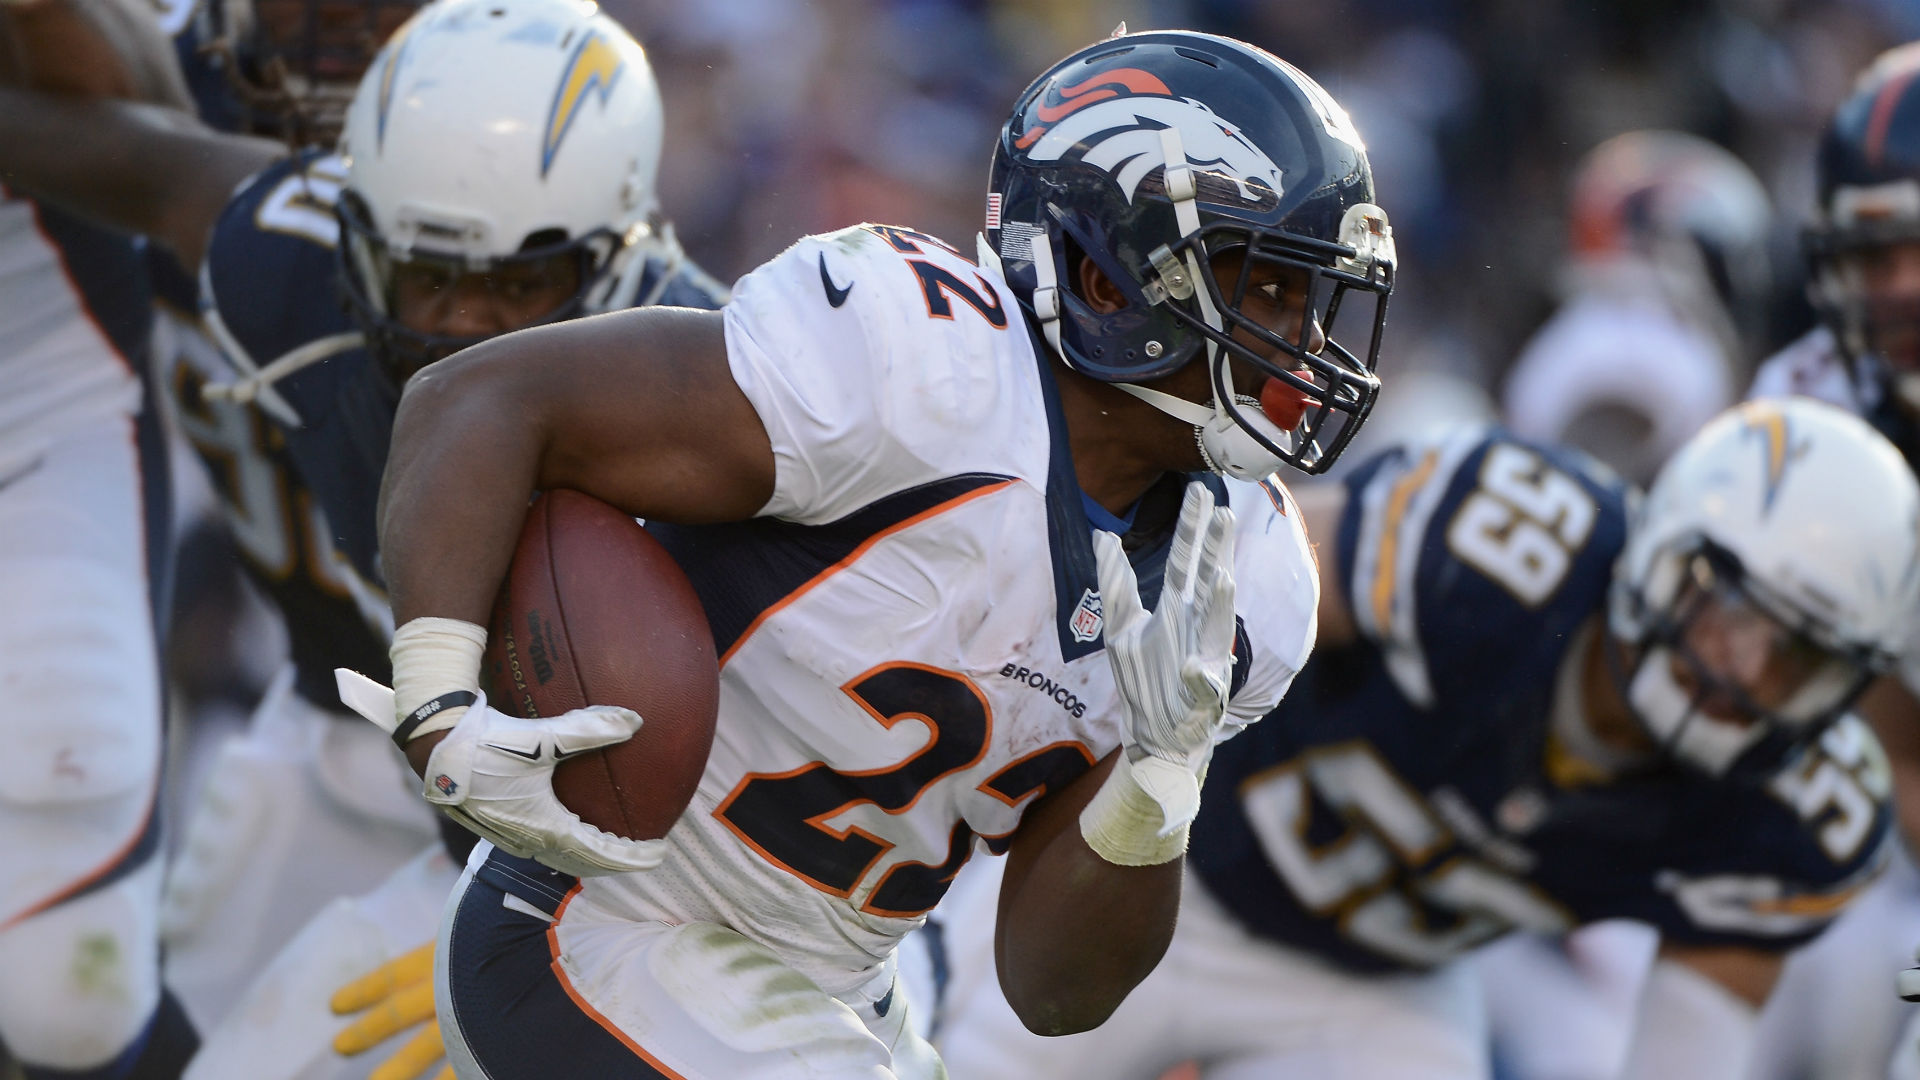 RBs Facing Change: Effect on 2015 ADP and fantasy outlook